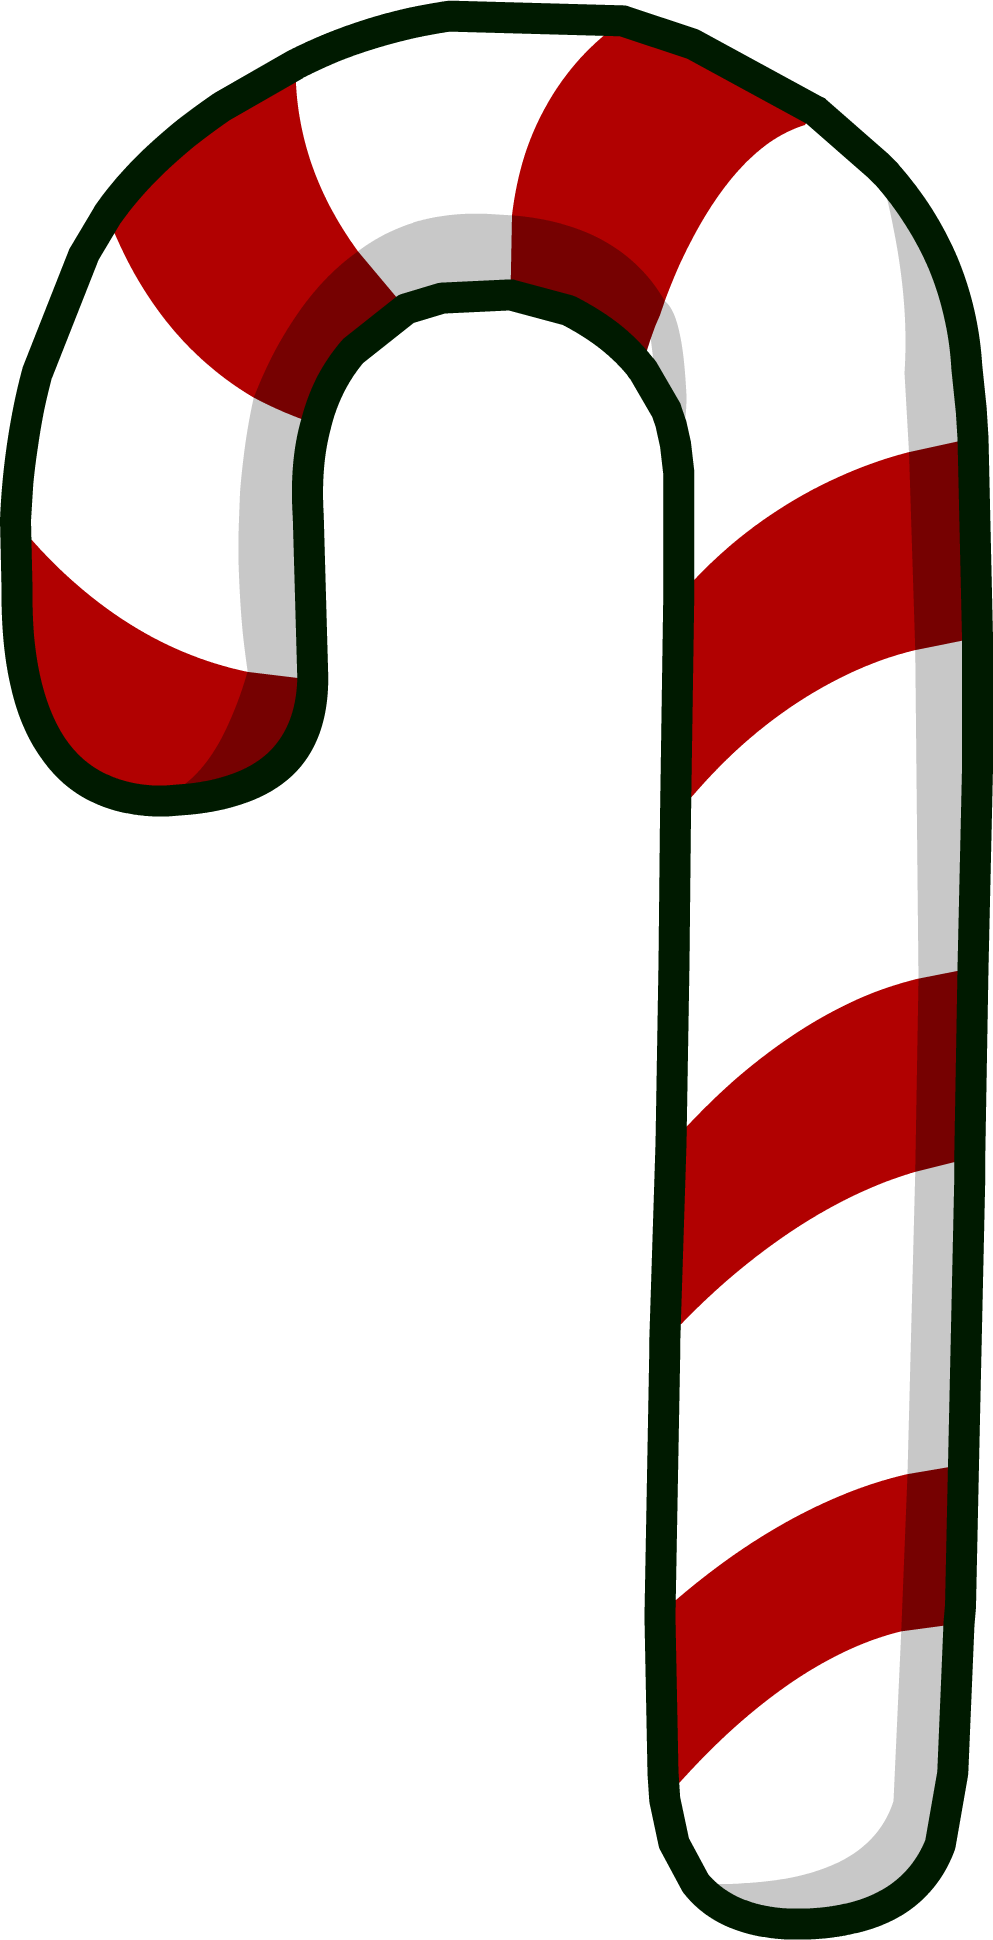 Candycane Clipart Free Download Best On Bowline Etc 993x1940 Candy Cane Pixel